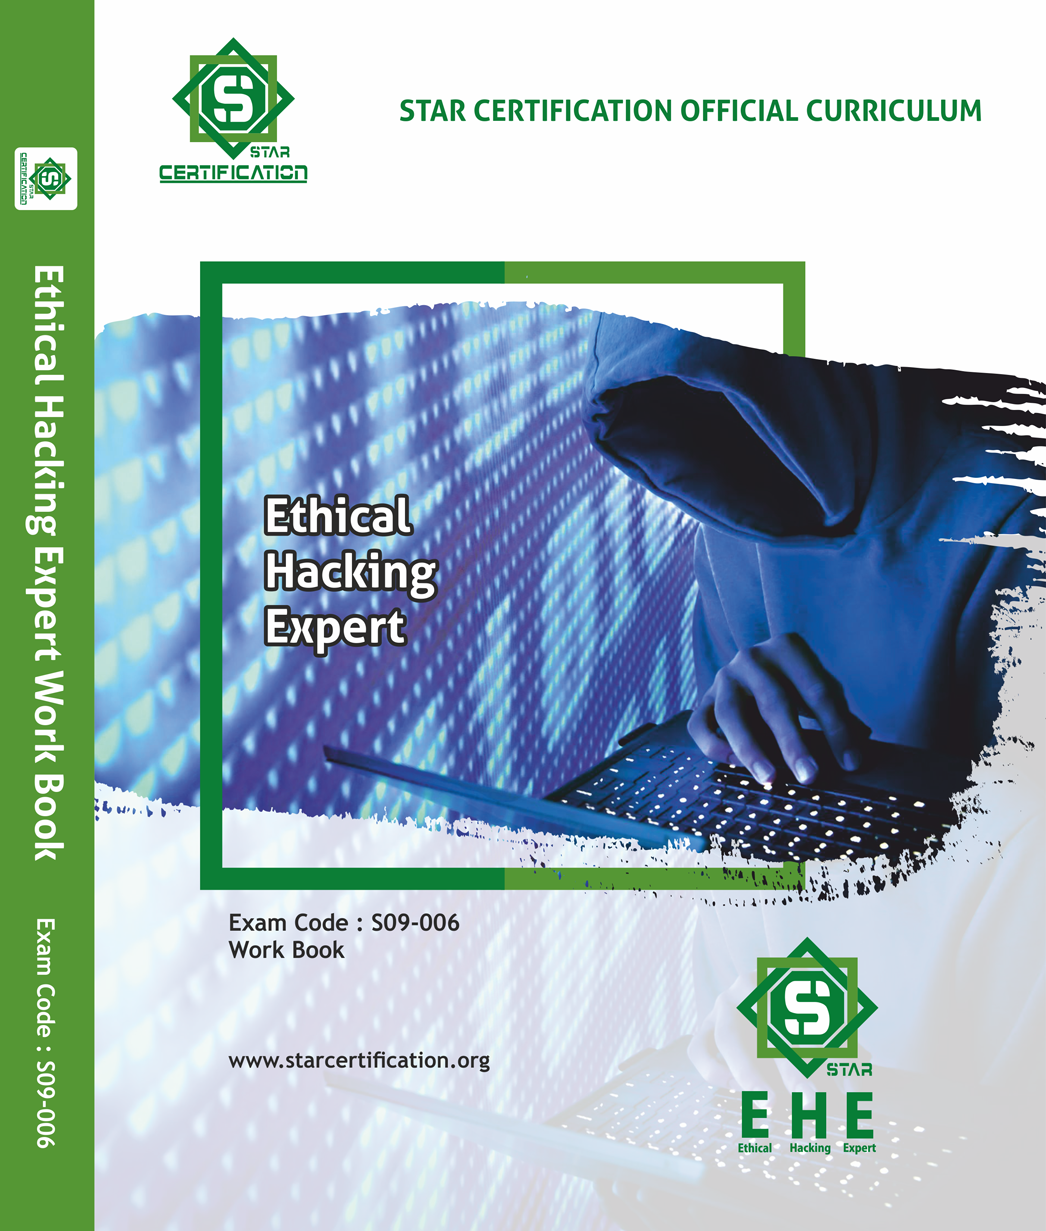 Ehe Ethical Hacking Expert Starcertification